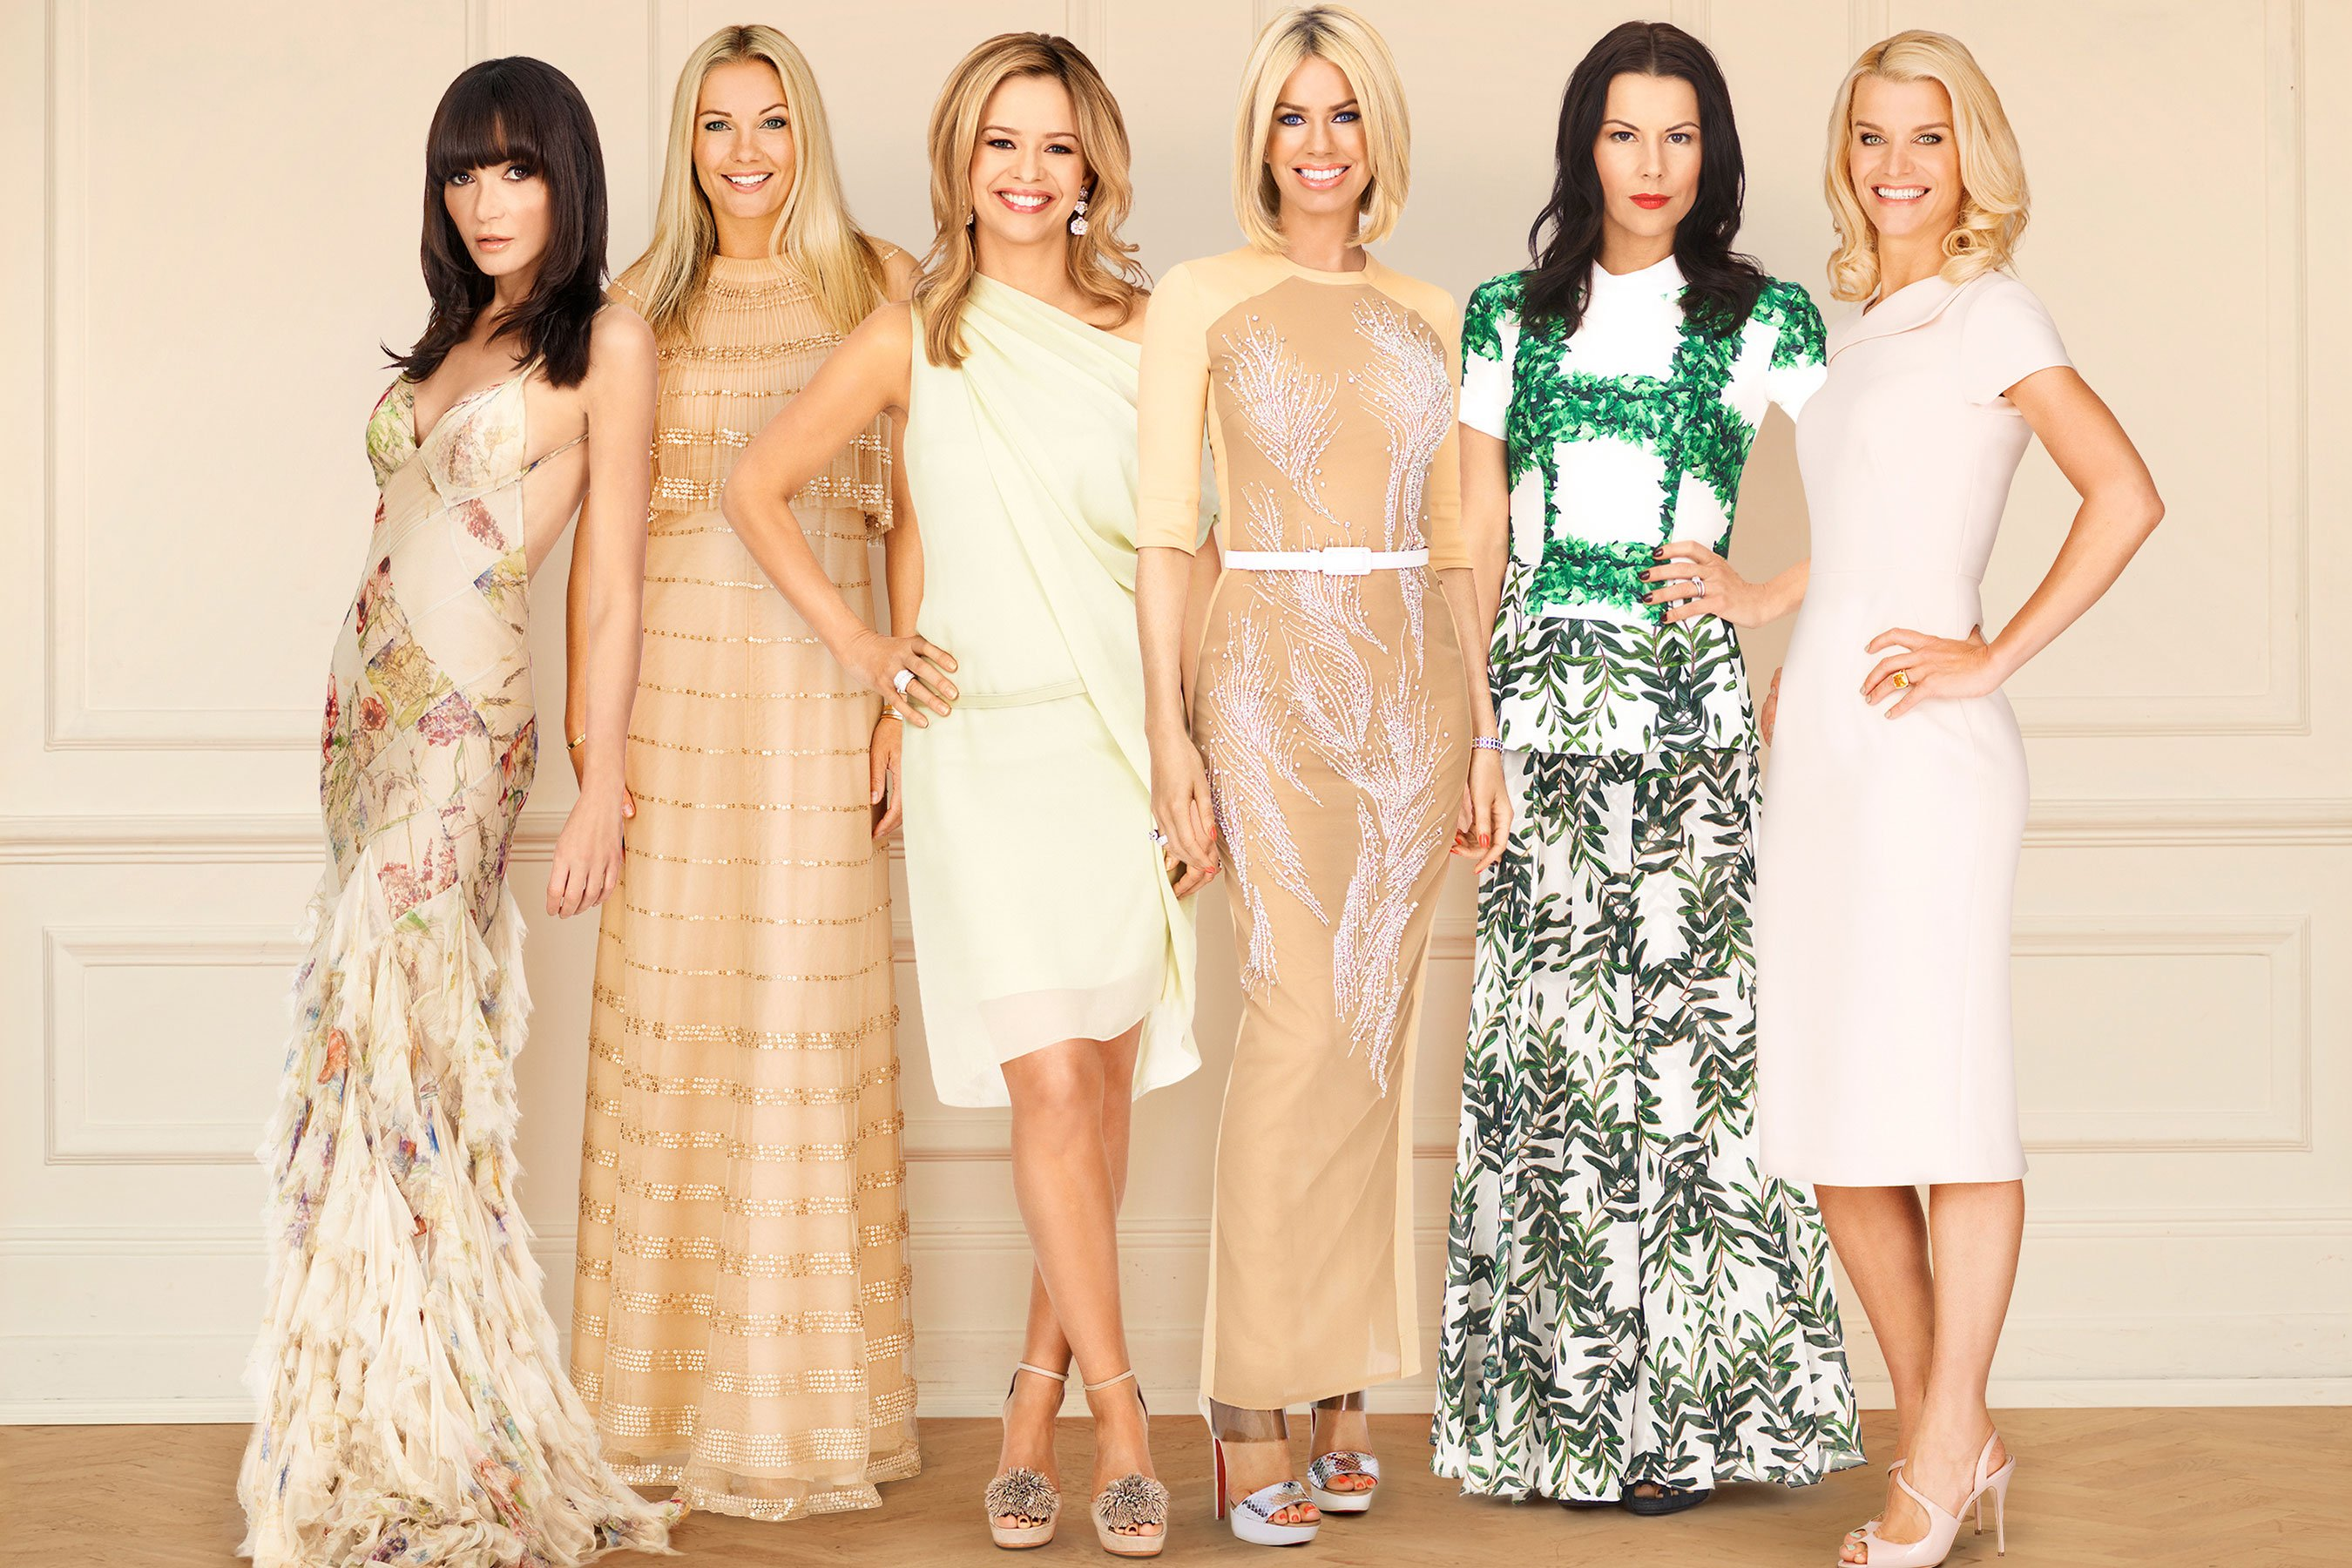 Ladies of London: All the Tragedies They've Faced, from Caprice Bourret's Brain Tumor to Annabelle Neilson's Death